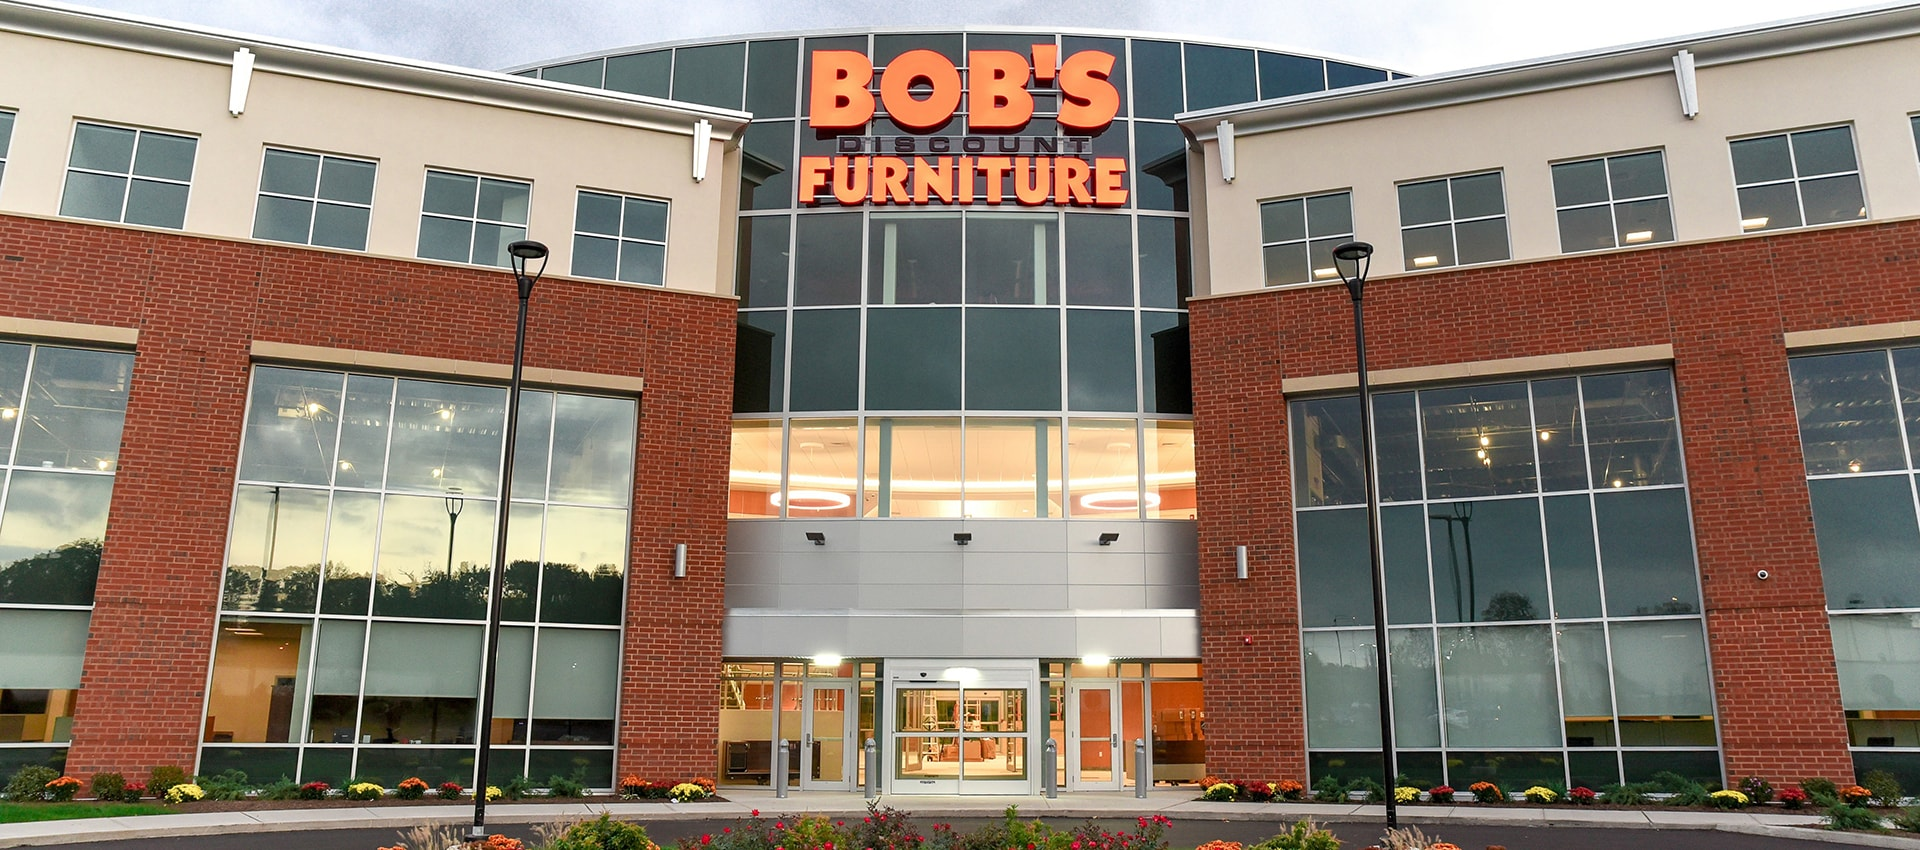 Bobs Furniture HQ - Manchester CT